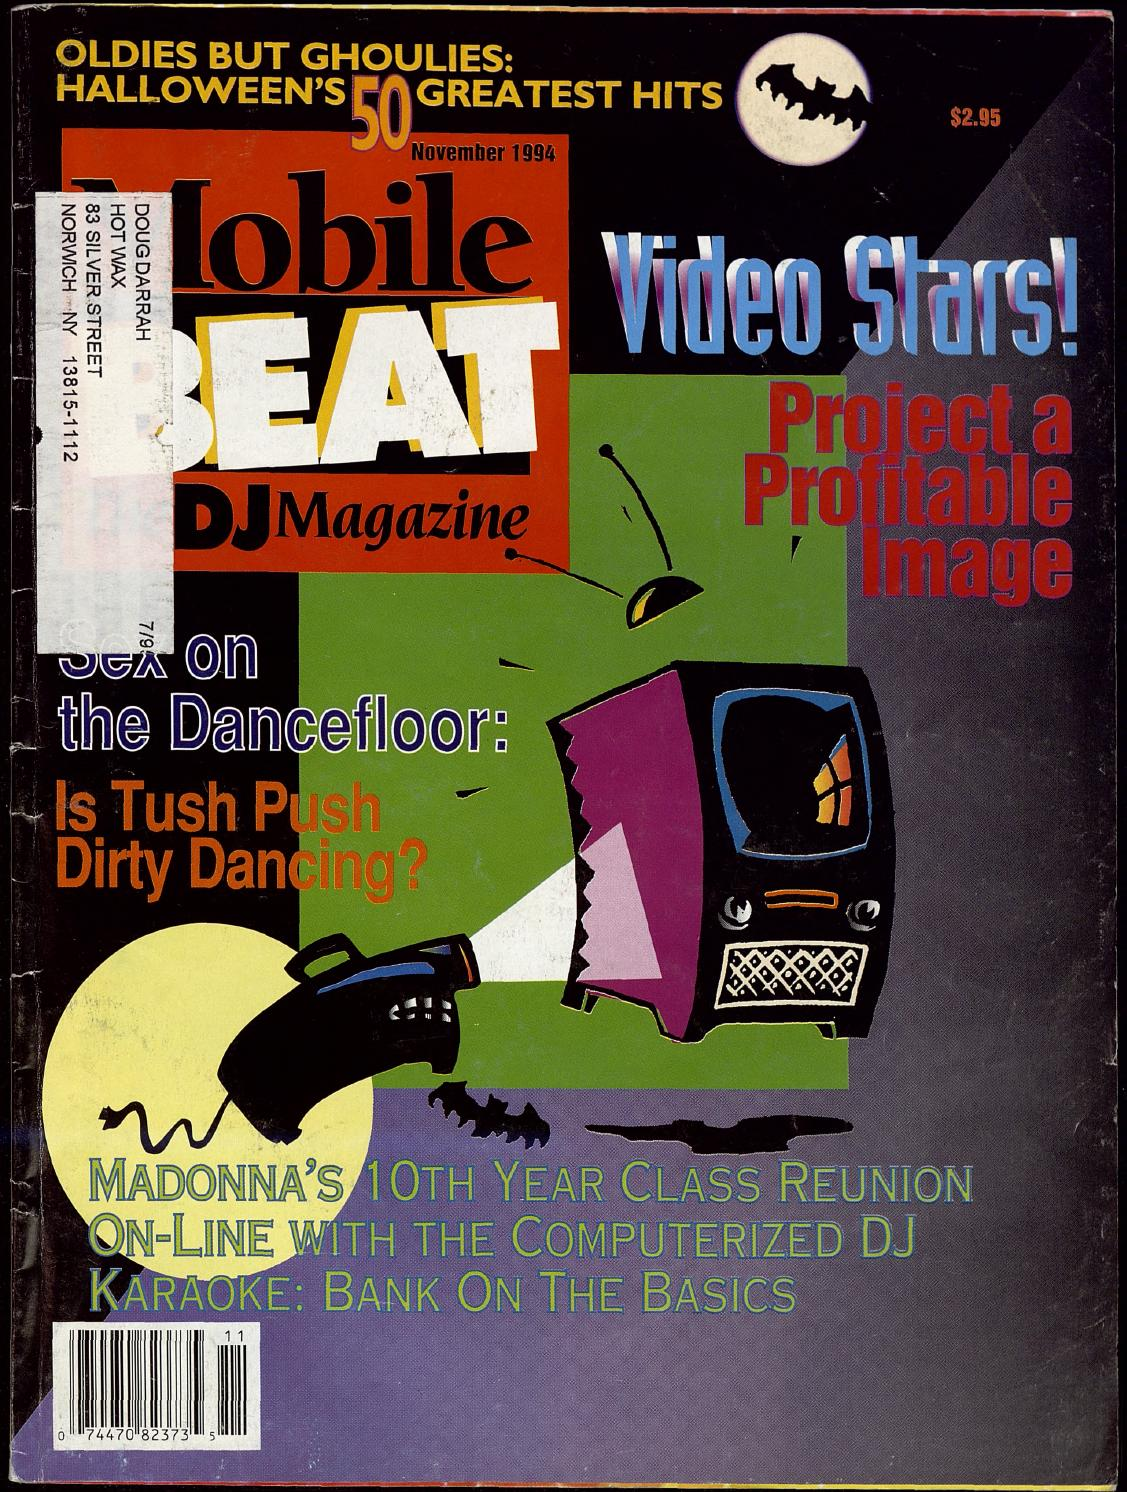 Issue 022 - November 1994 - Video Stars!